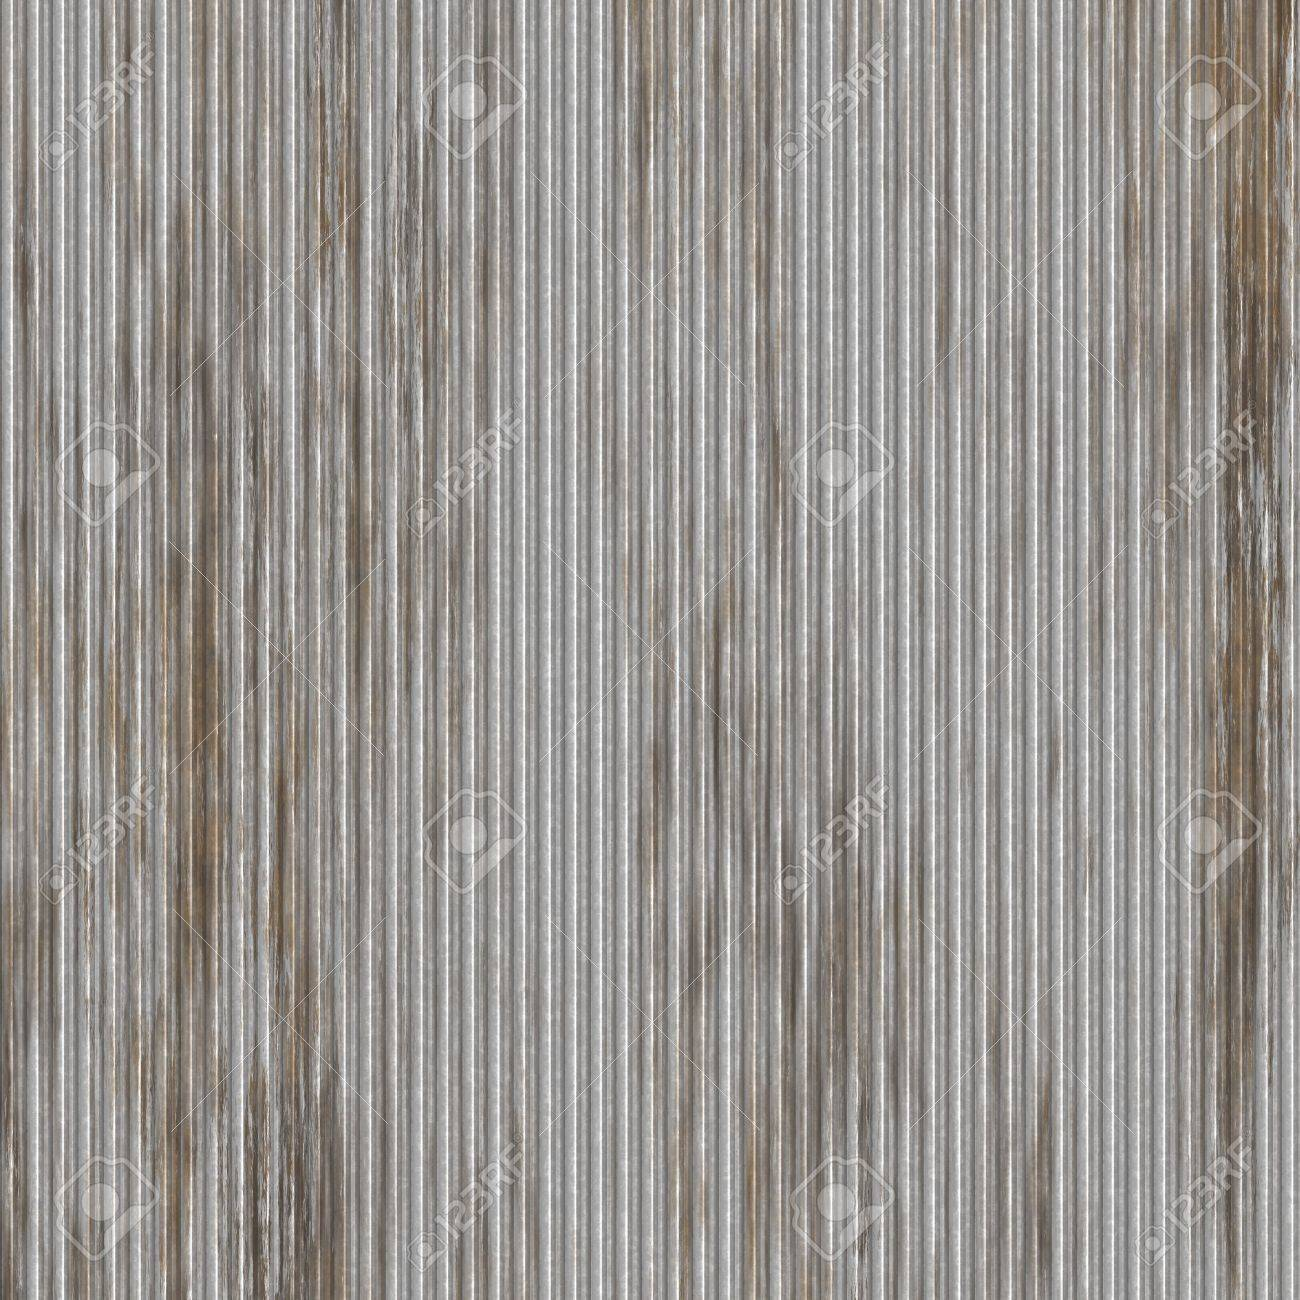 Corrugated metal ridged surface with corrosion seamless texture Stock Photo  6233515  Corrugated Metal Ridged Surface. Corrugated Metal Seamless Texture